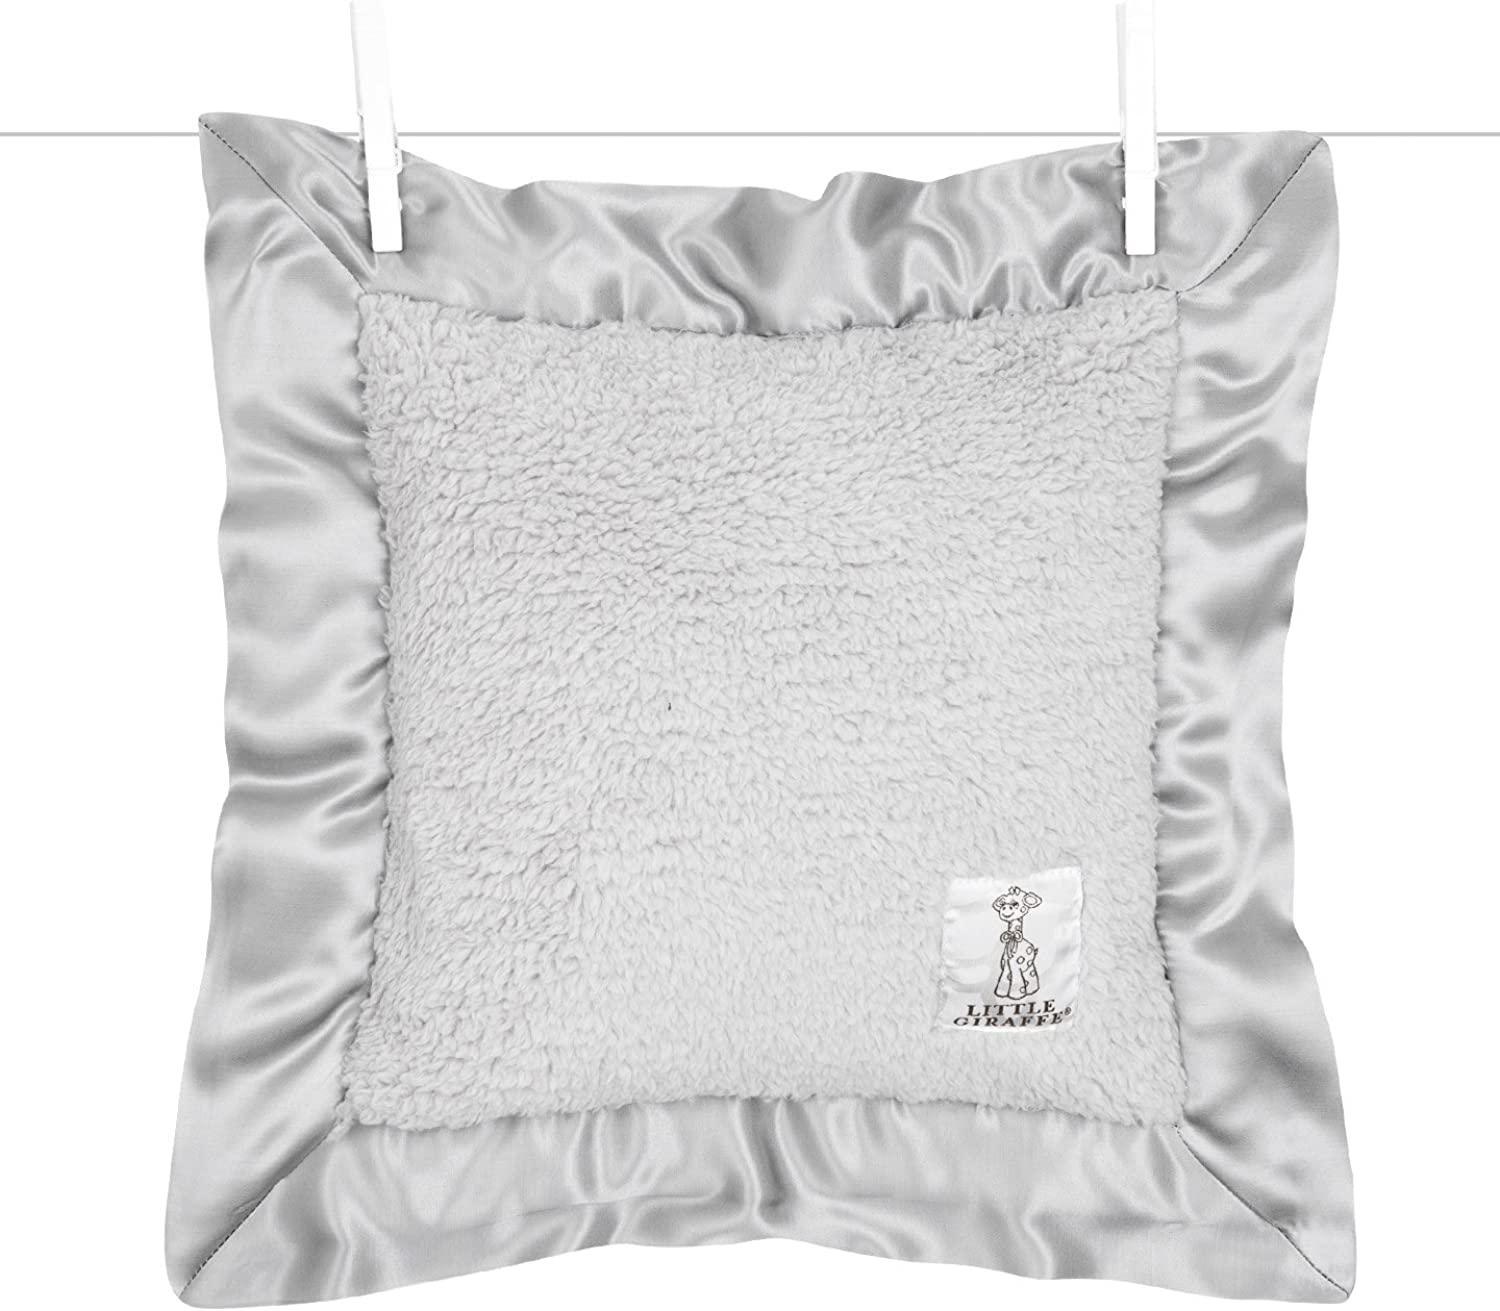 Little Giraffe Bella Pillow, Silver